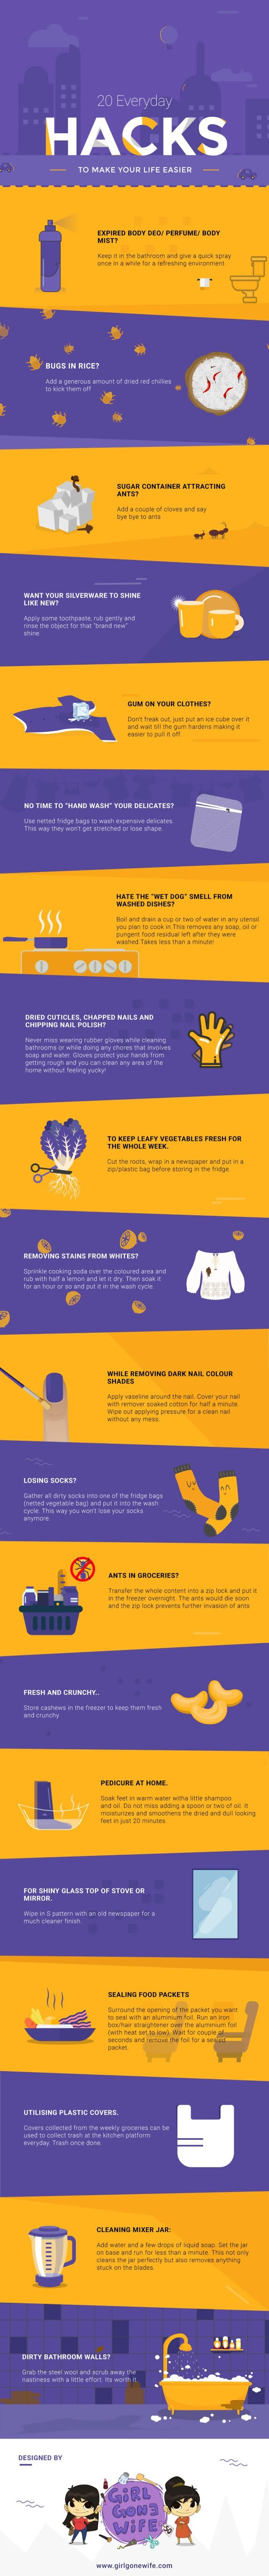 20 Life-Changing Hacks #infographic #Life style #infographics #Infographic #Life Hacks #Life